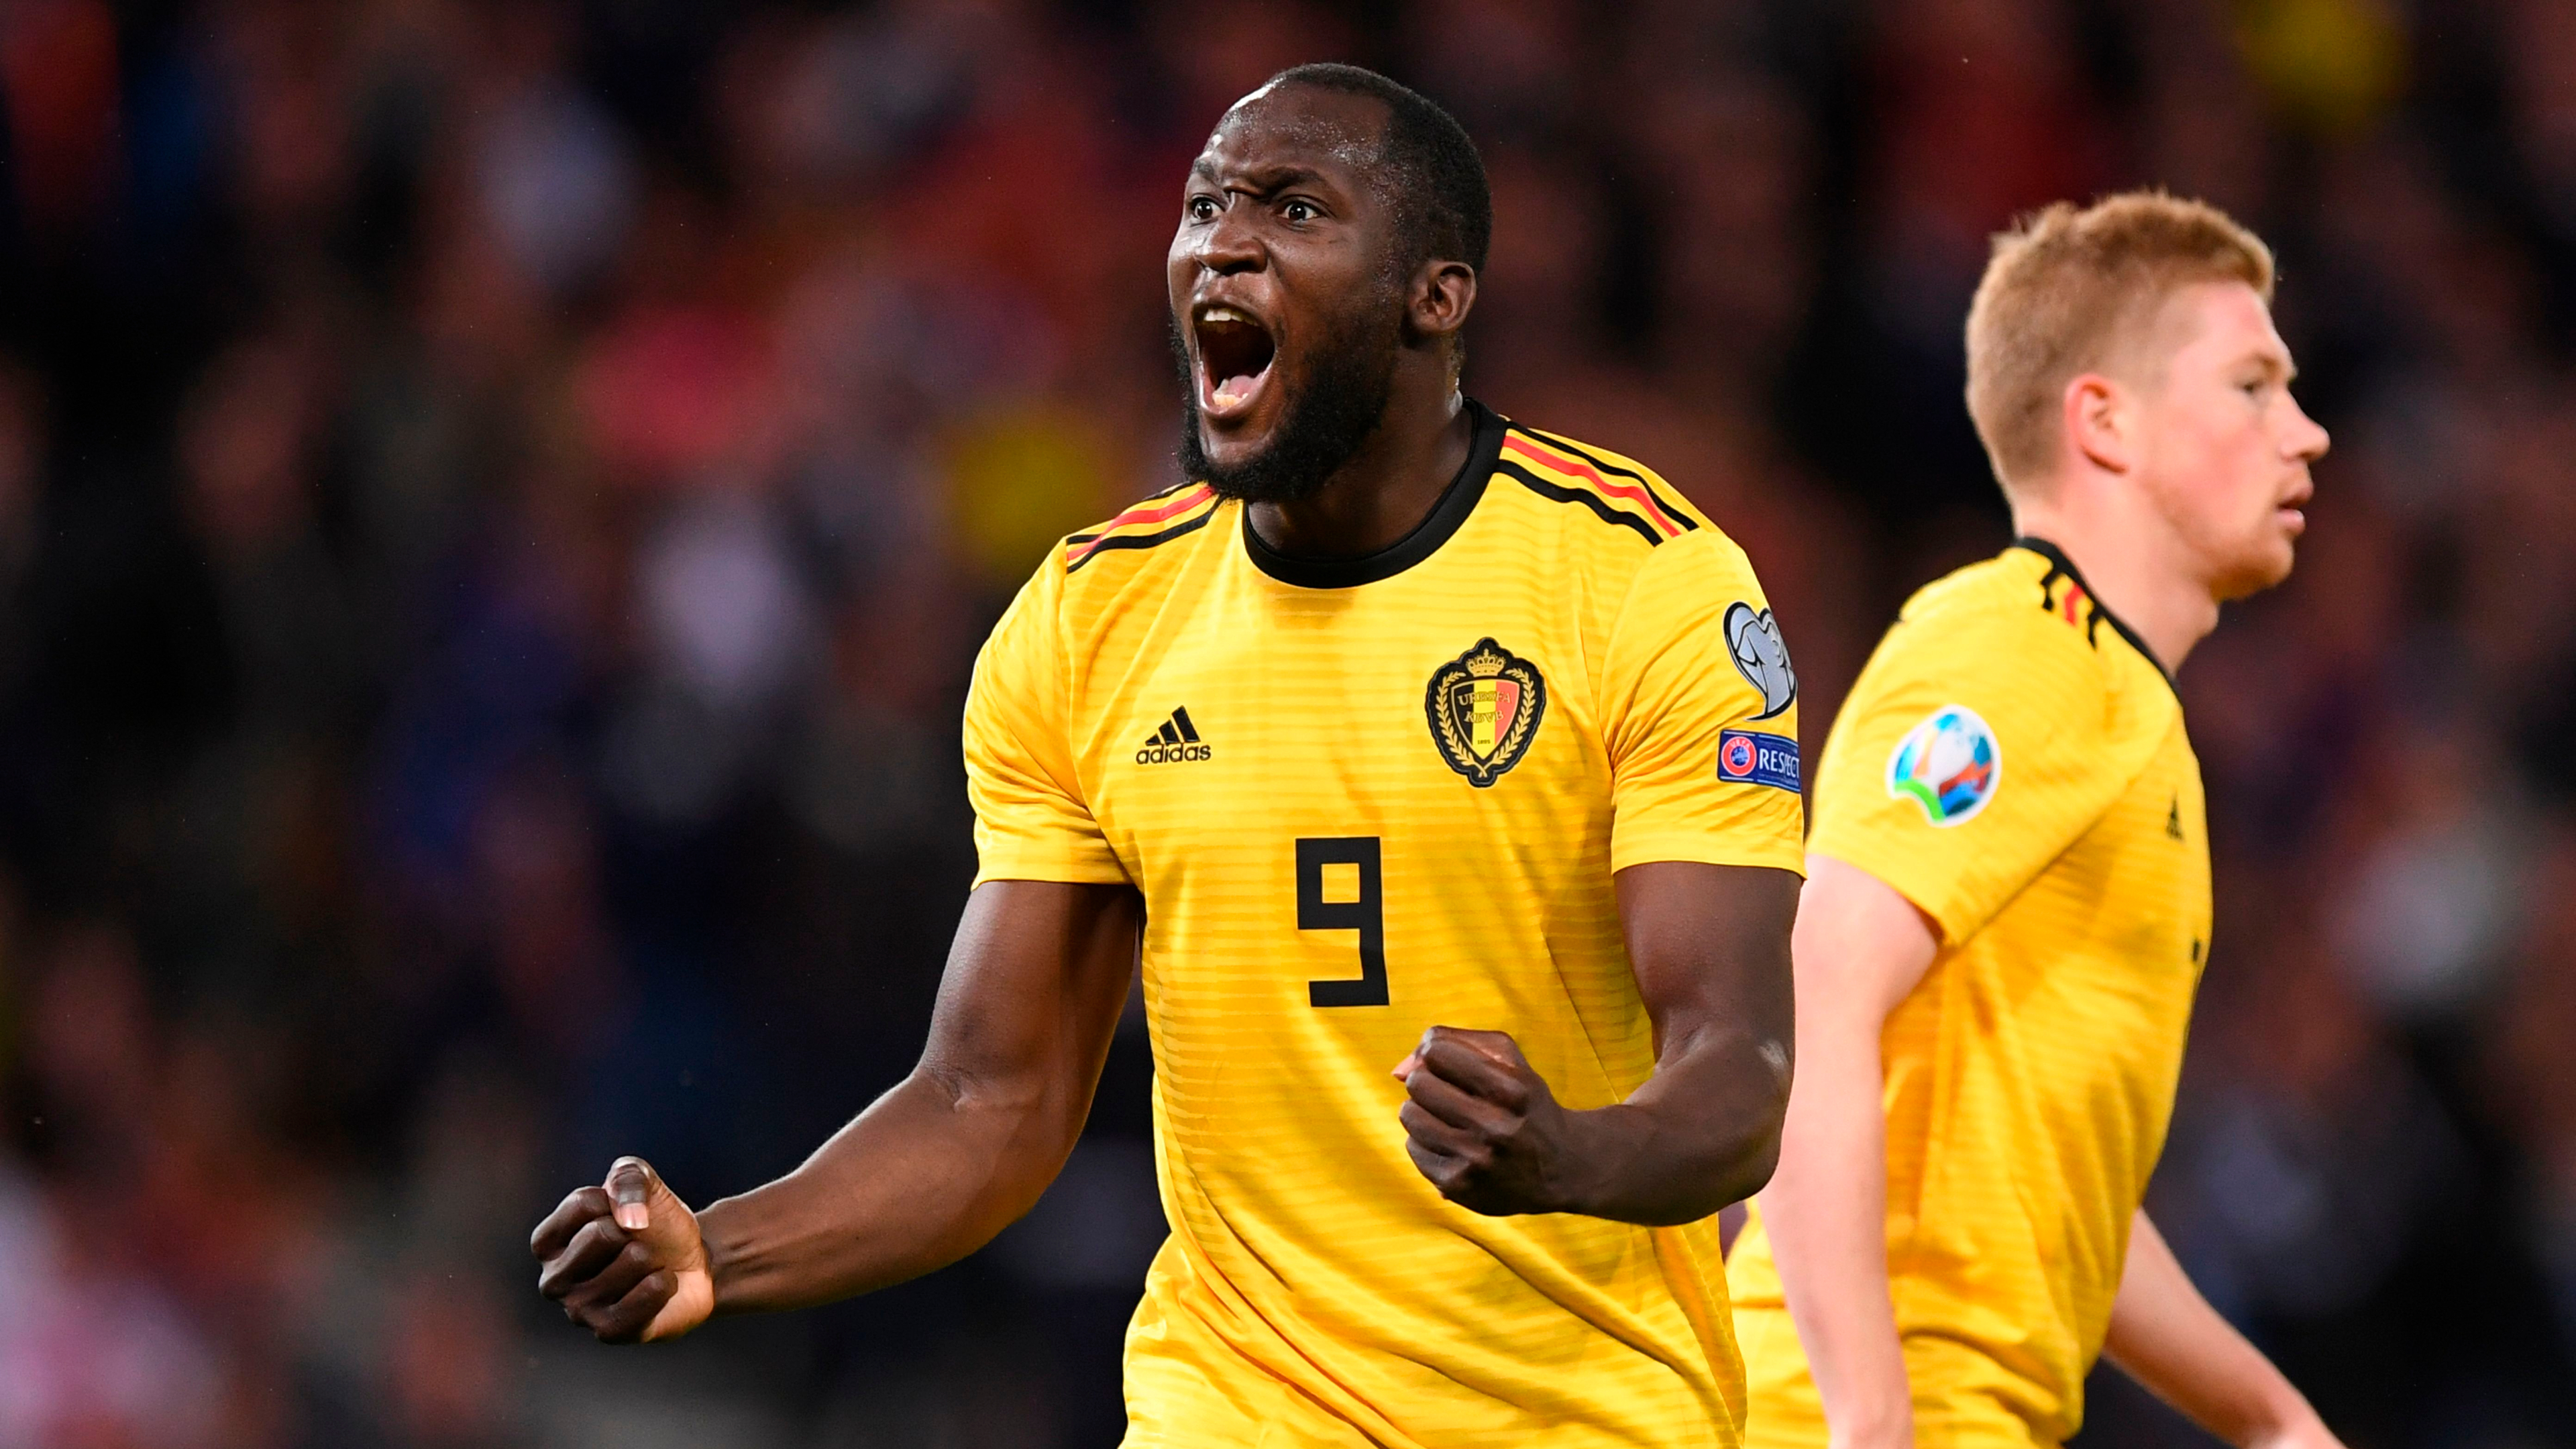 'I am a killer on the field' - Lukaku has 50th Belgium goal in his sights